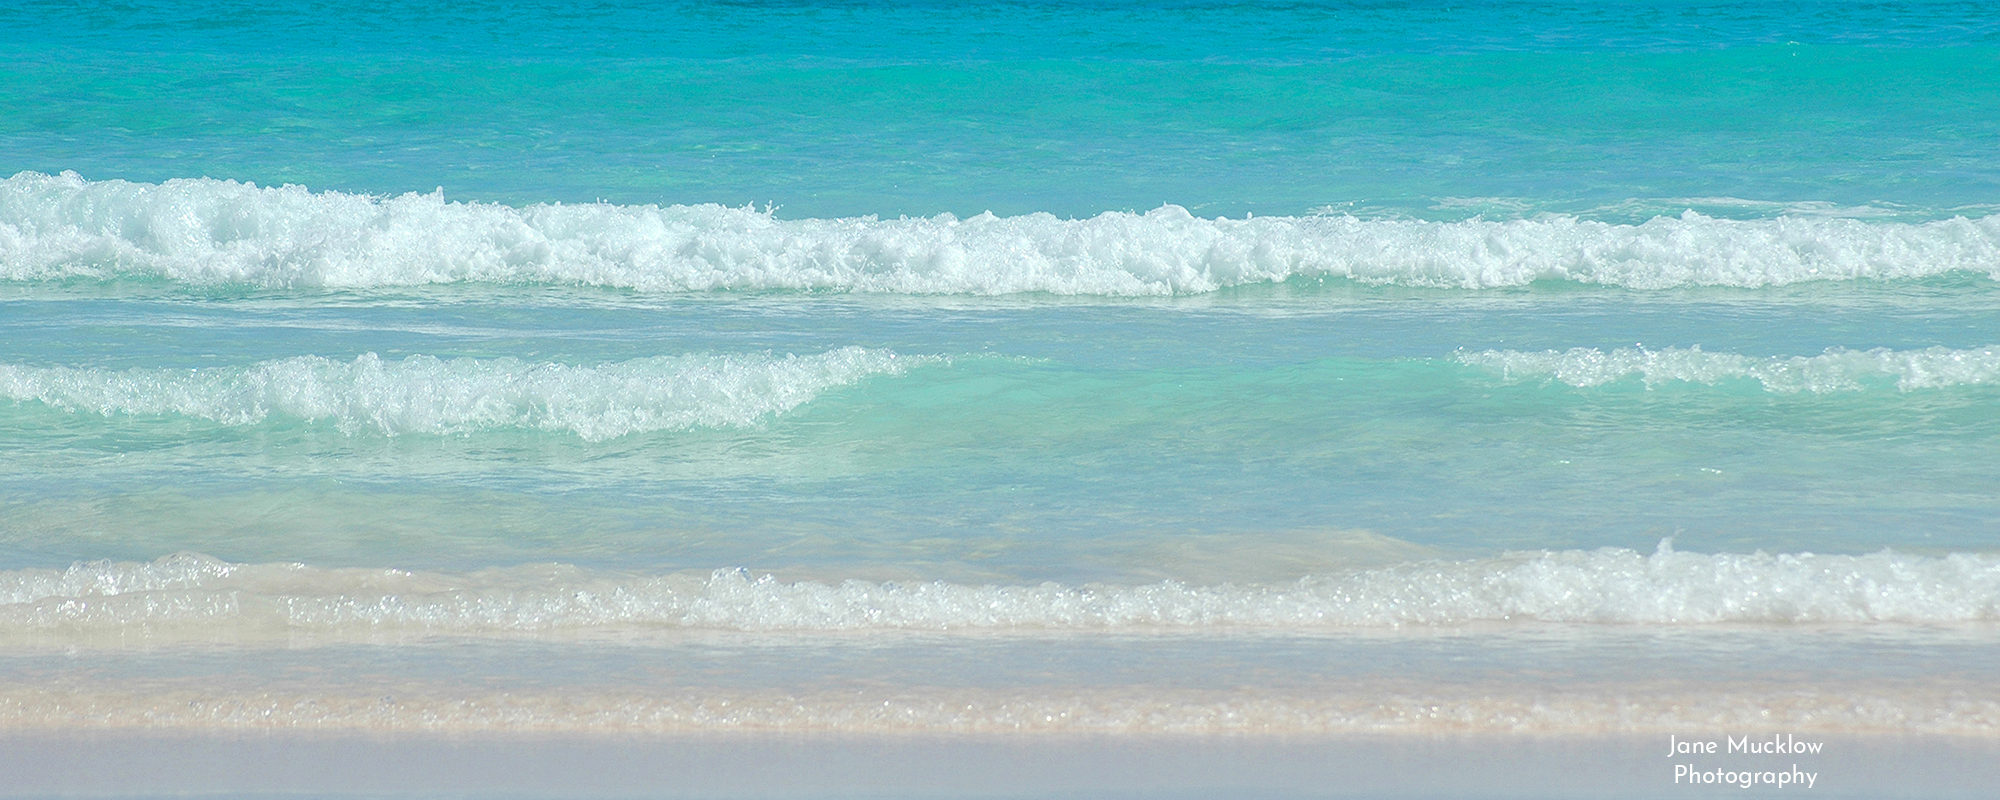 Photo by Jane Mucklow of the Sea, in Bermuda (#1), available as a canvas for your wall.